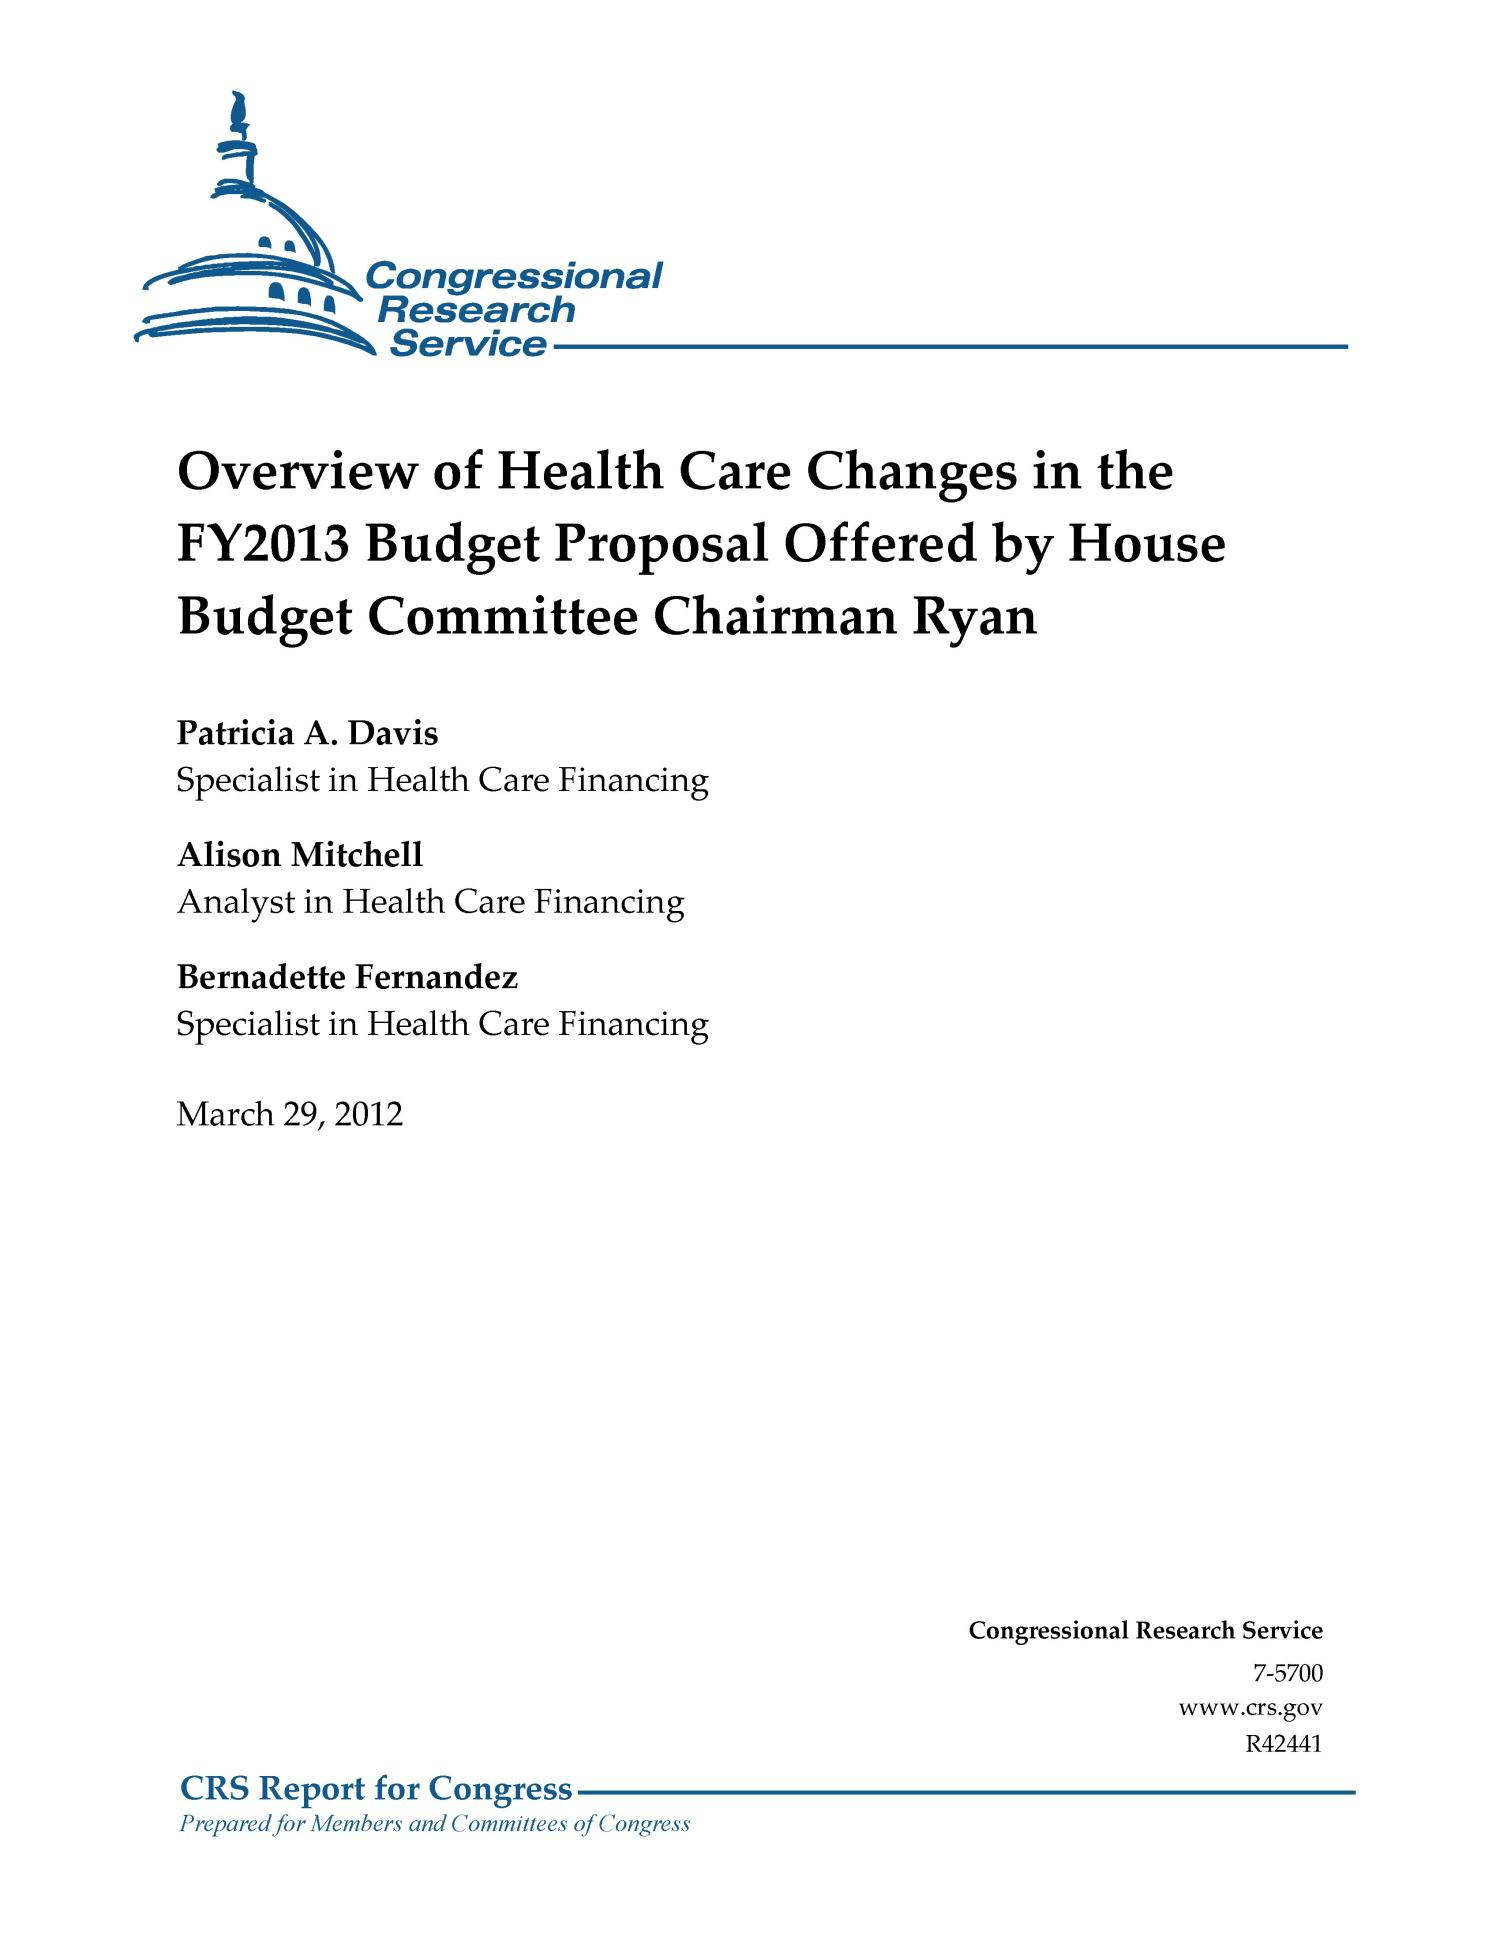 Overview of Health Care Changes in the FY2013 Budget Proposal Offered by House Budget Committee Chairman Ryan                                                                                                      [Sequence #]: 1 of 16